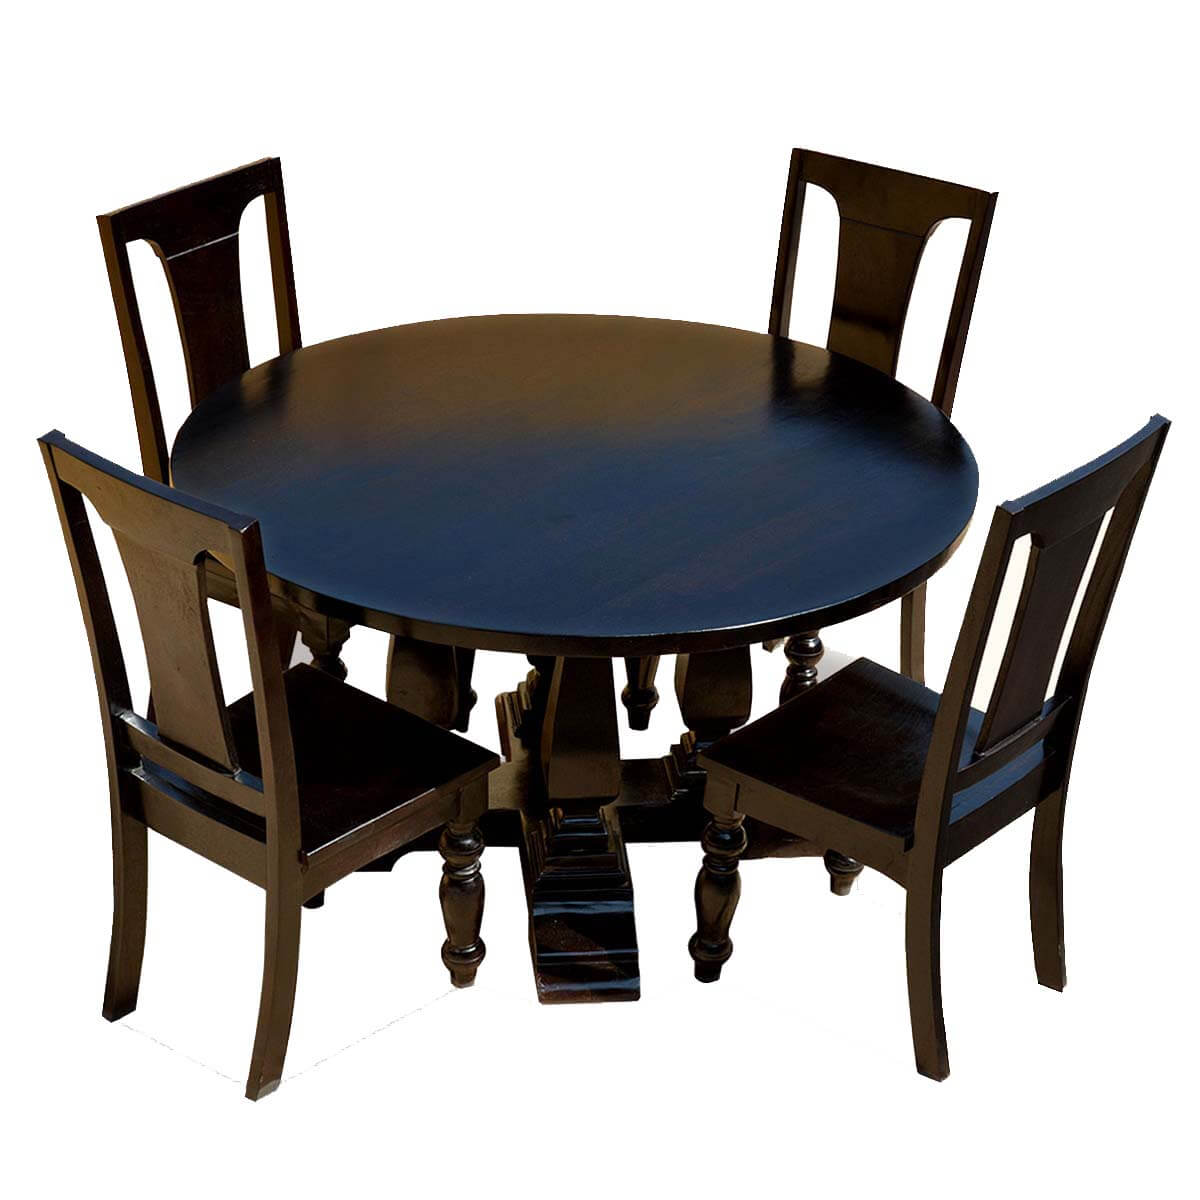 p black solid wood cruciform base baluster sutton round dining table